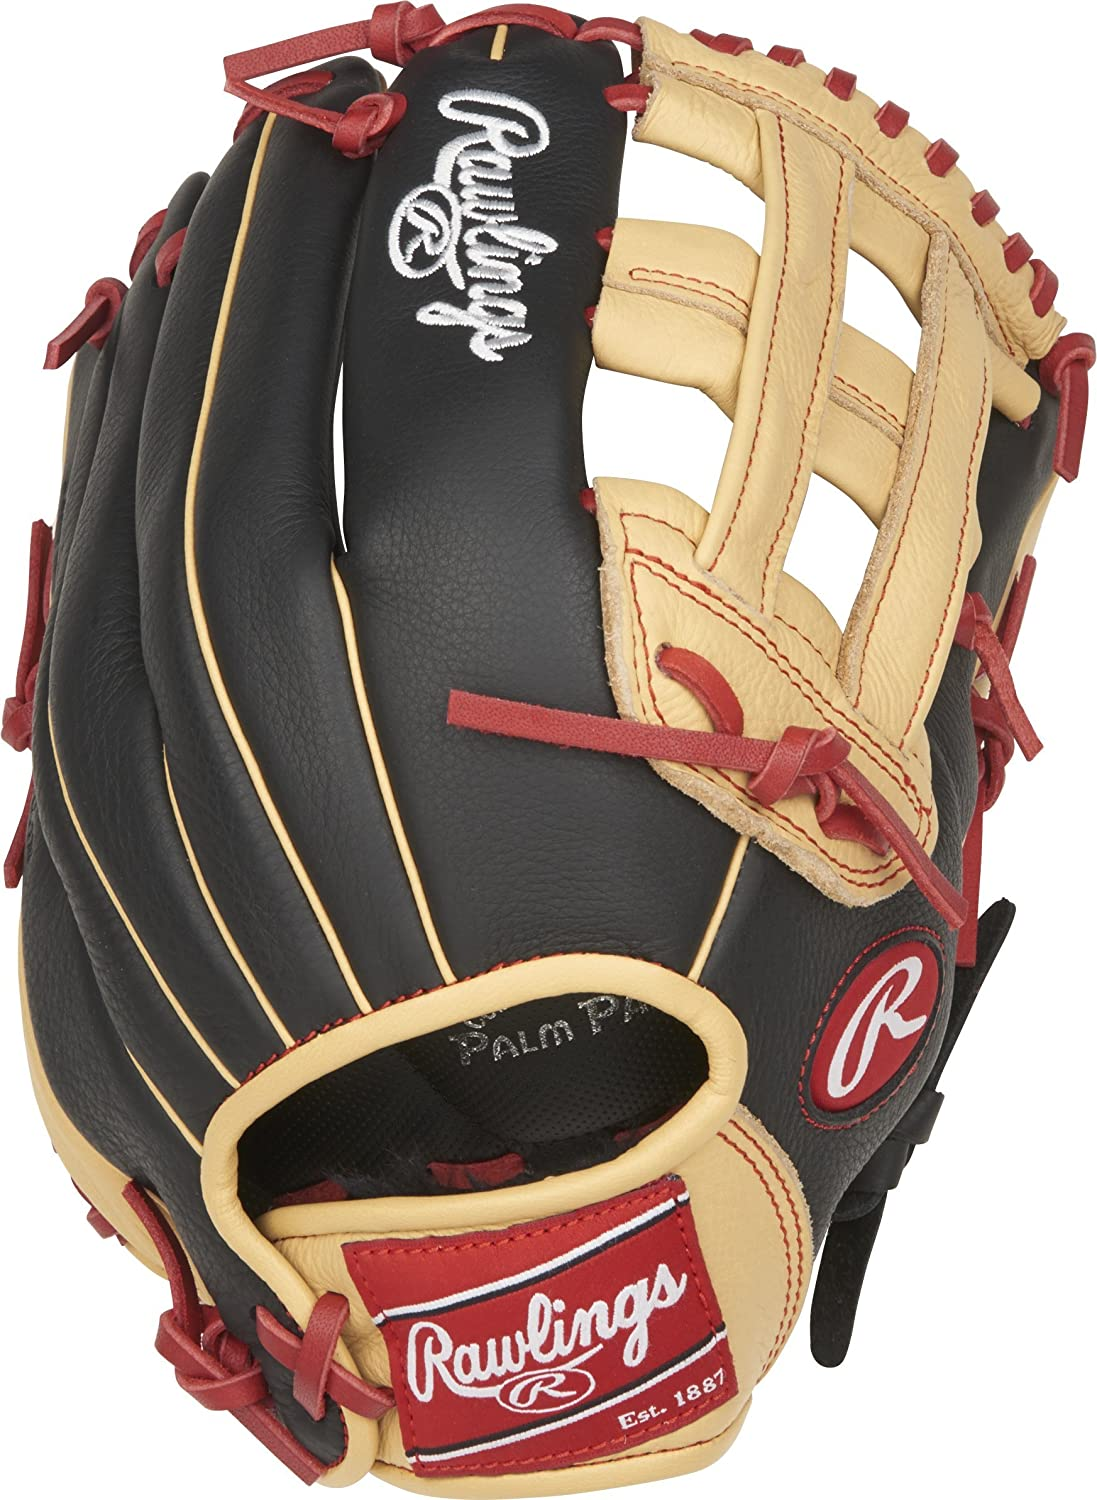 Rawlings Select Pro Lite  - Top 10 best youth baseball gloves